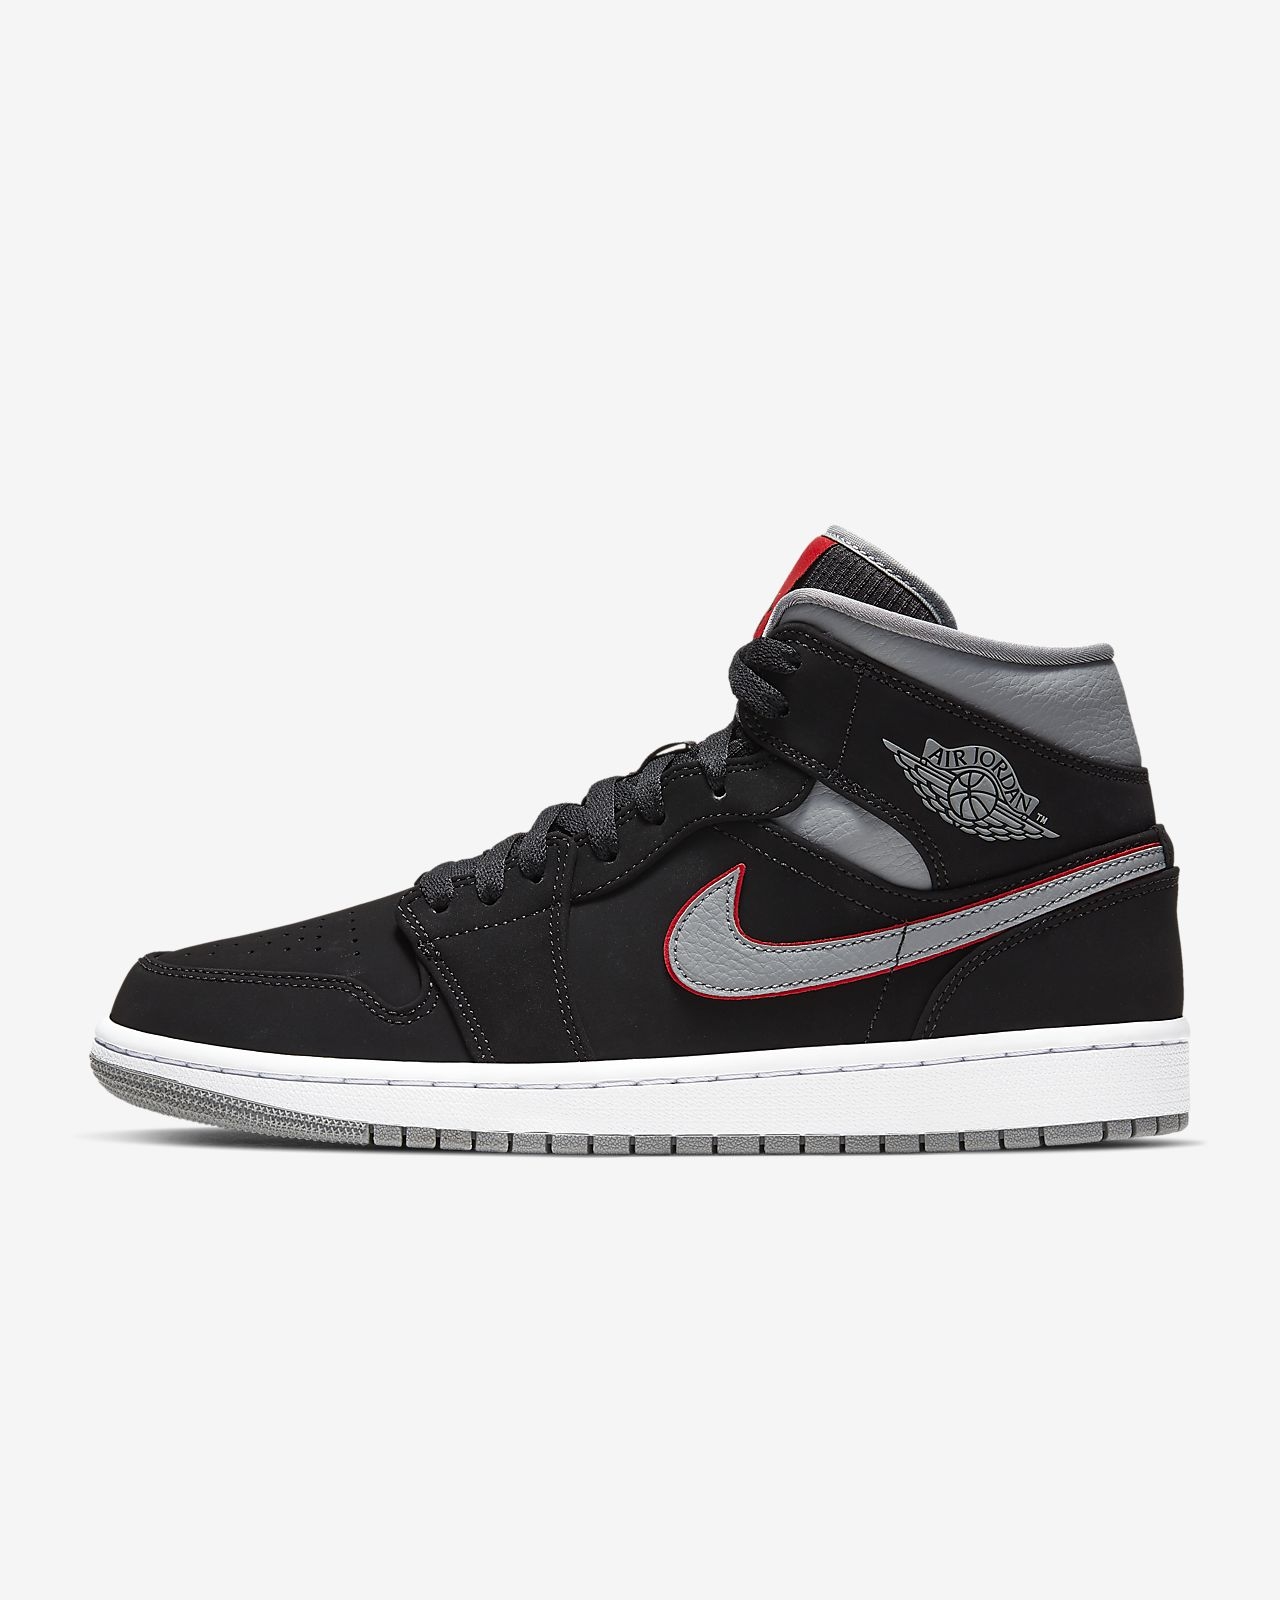 on sale ab26b efedd Men s Shoe. Air Jordan 1 Mid